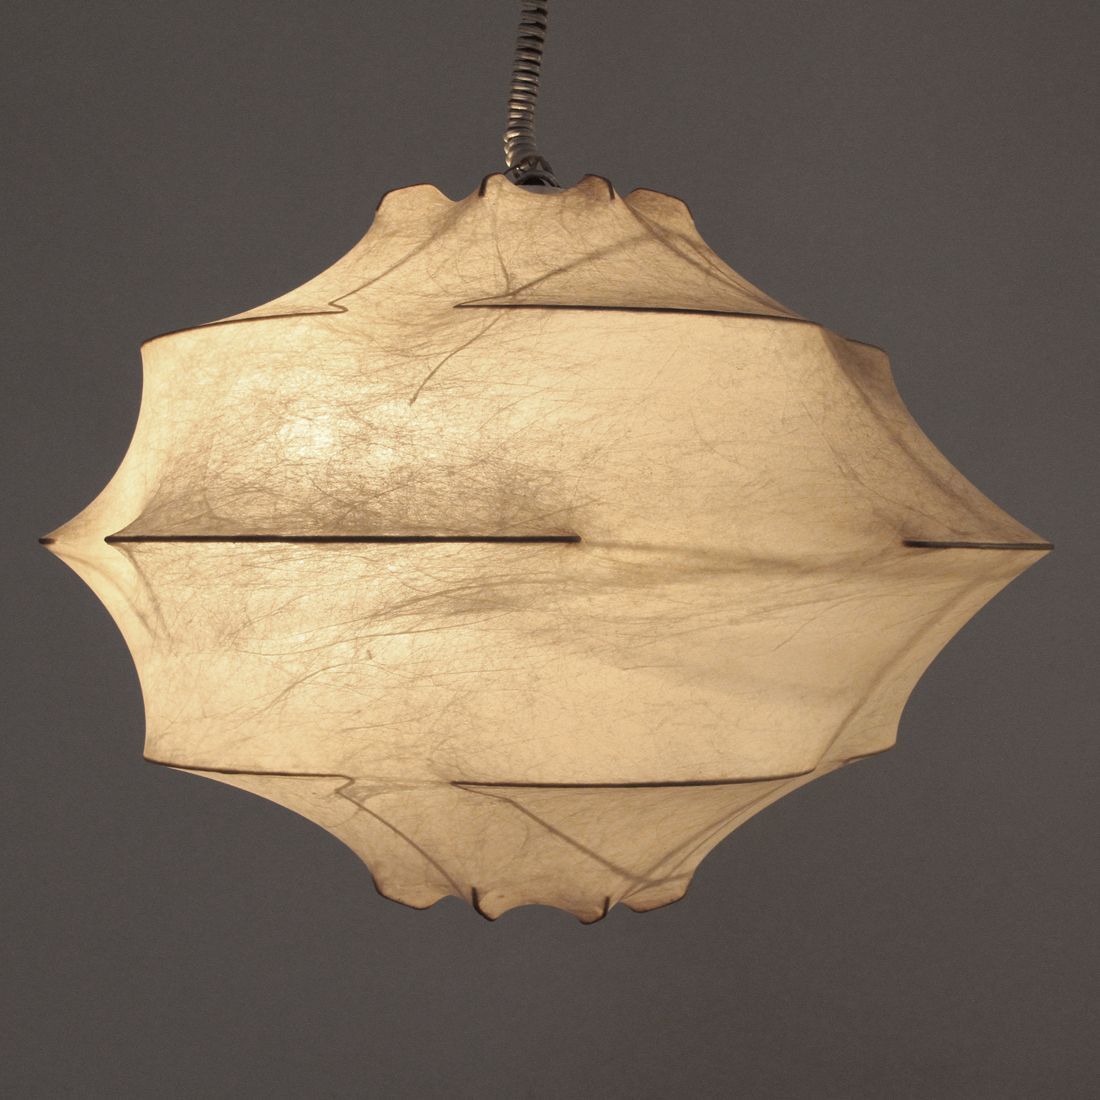 Suspension Papier Japonais Plafonnier Mid Century En Cocon Italie 1960s 5 Light